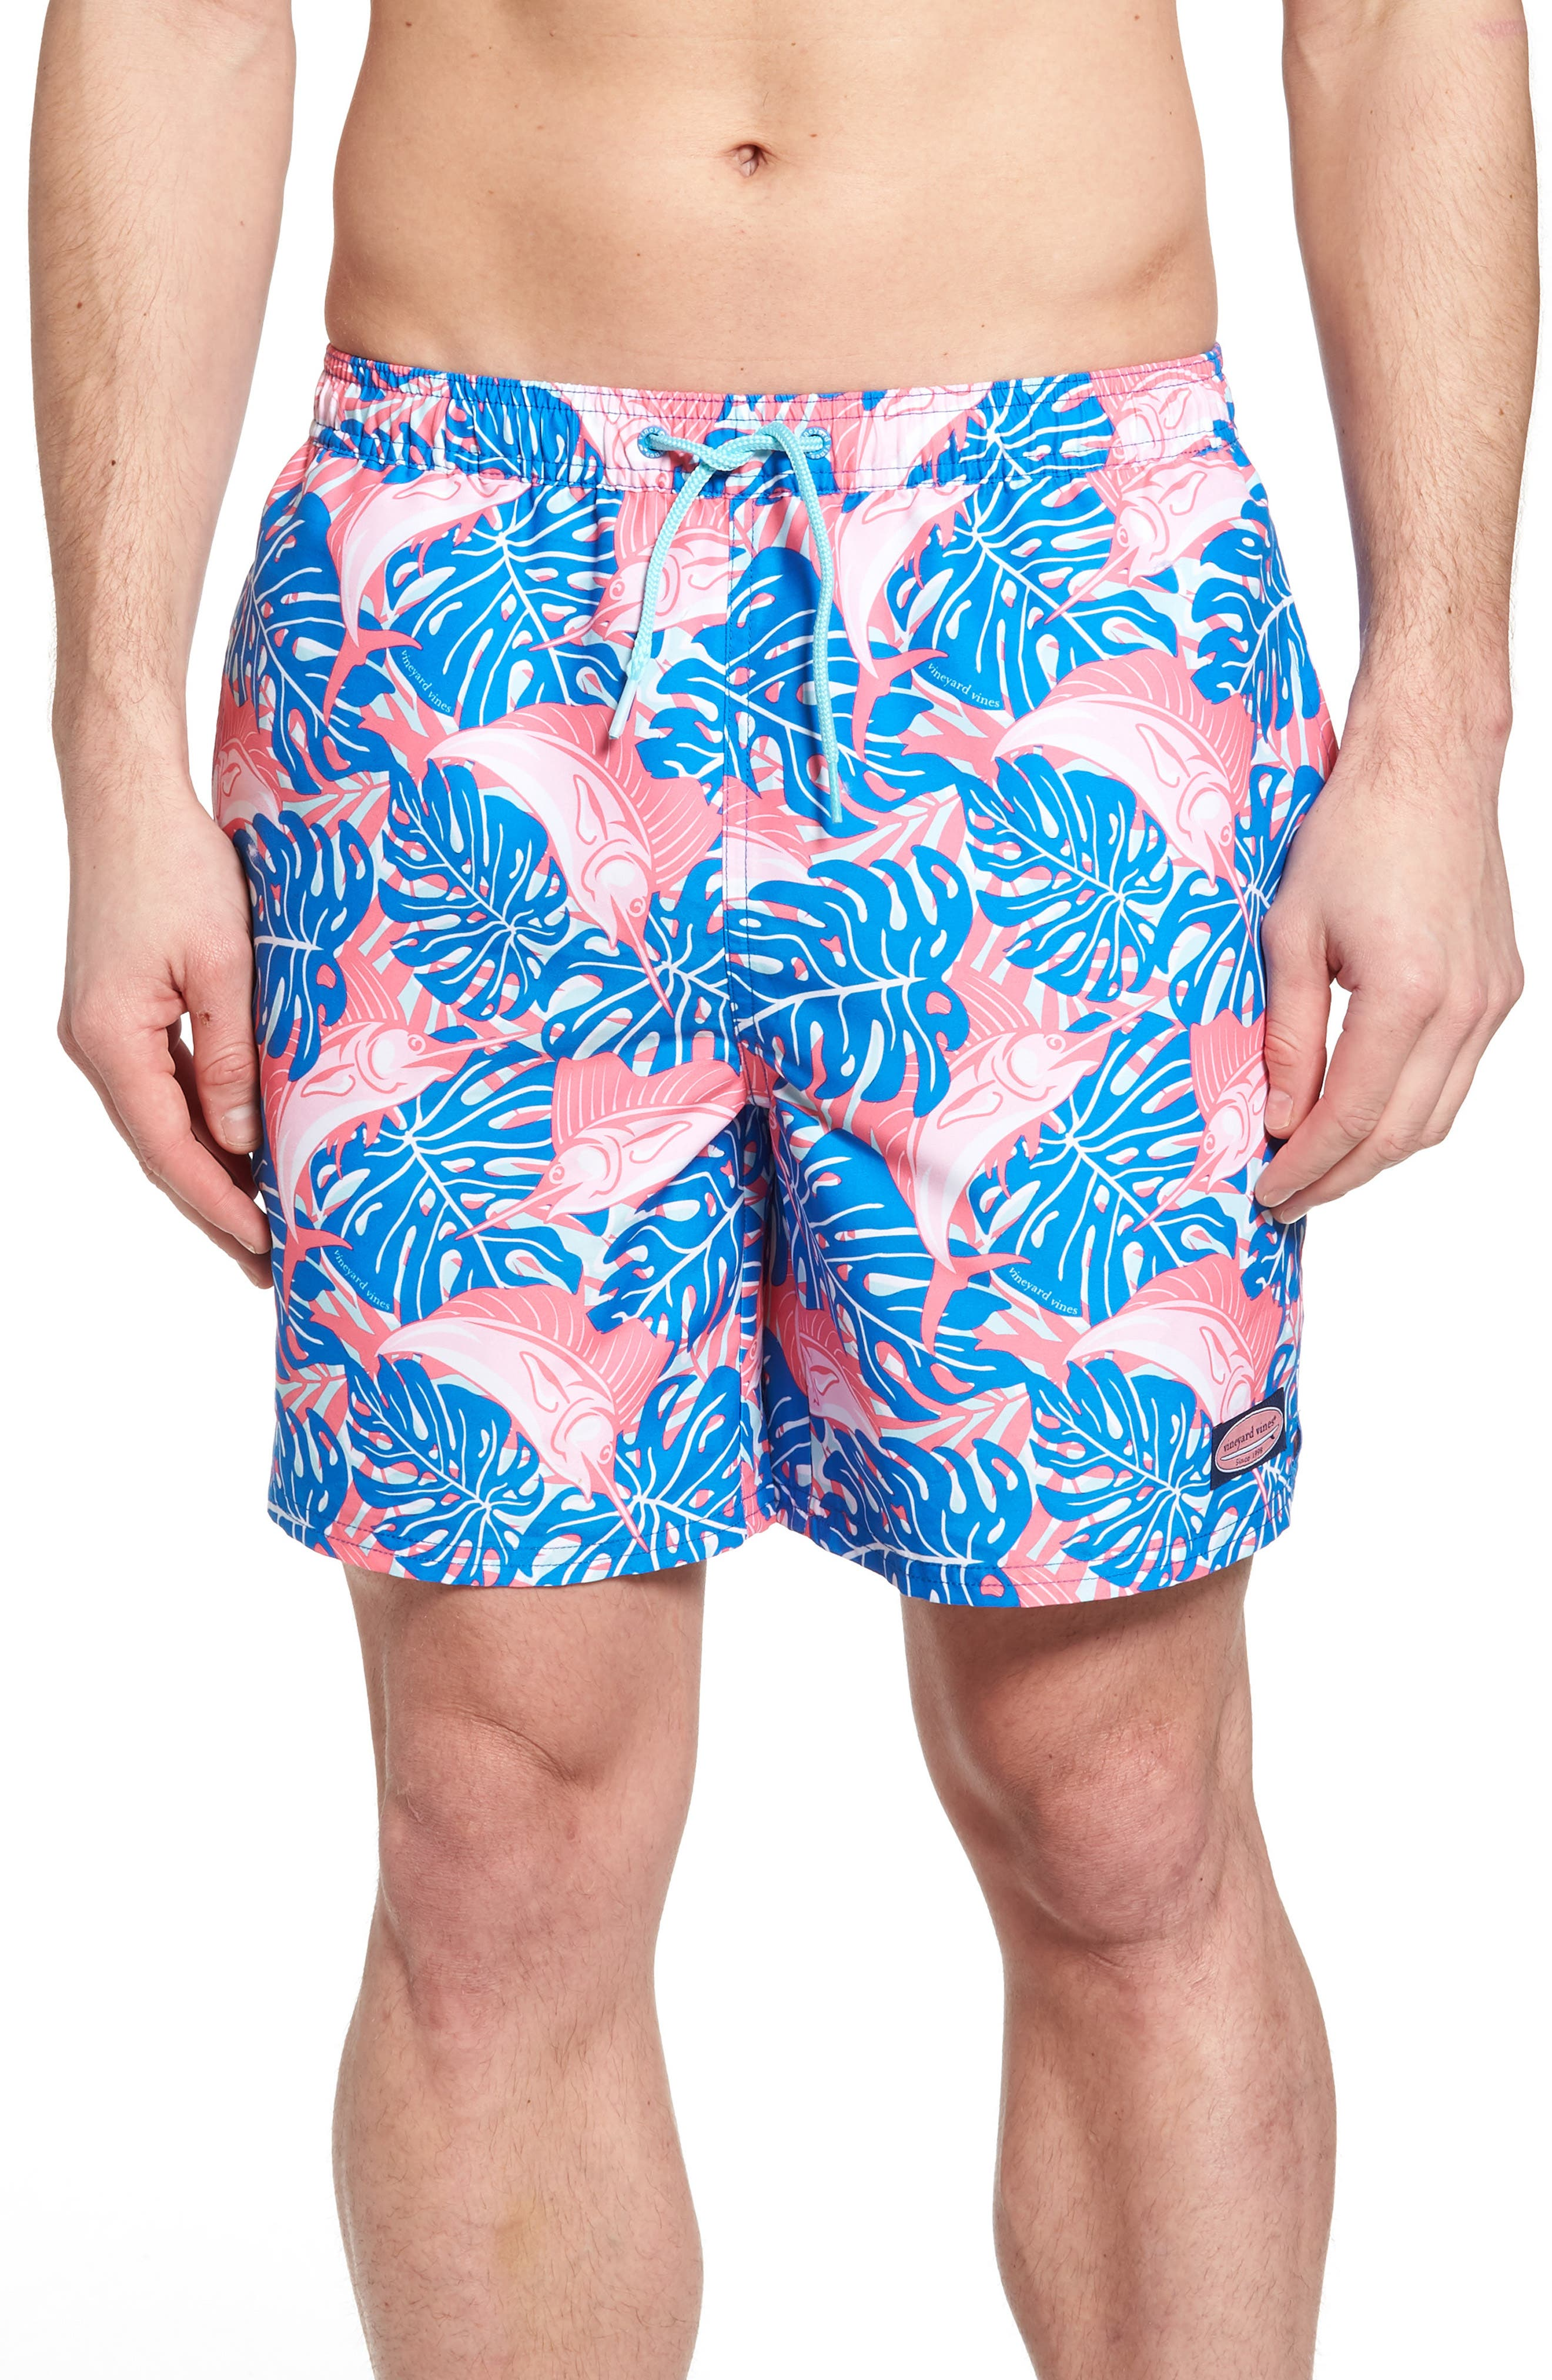 Sailfish & Leaves Chappy Swim Trunks,                             Main thumbnail 1, color,                             Azure Blue